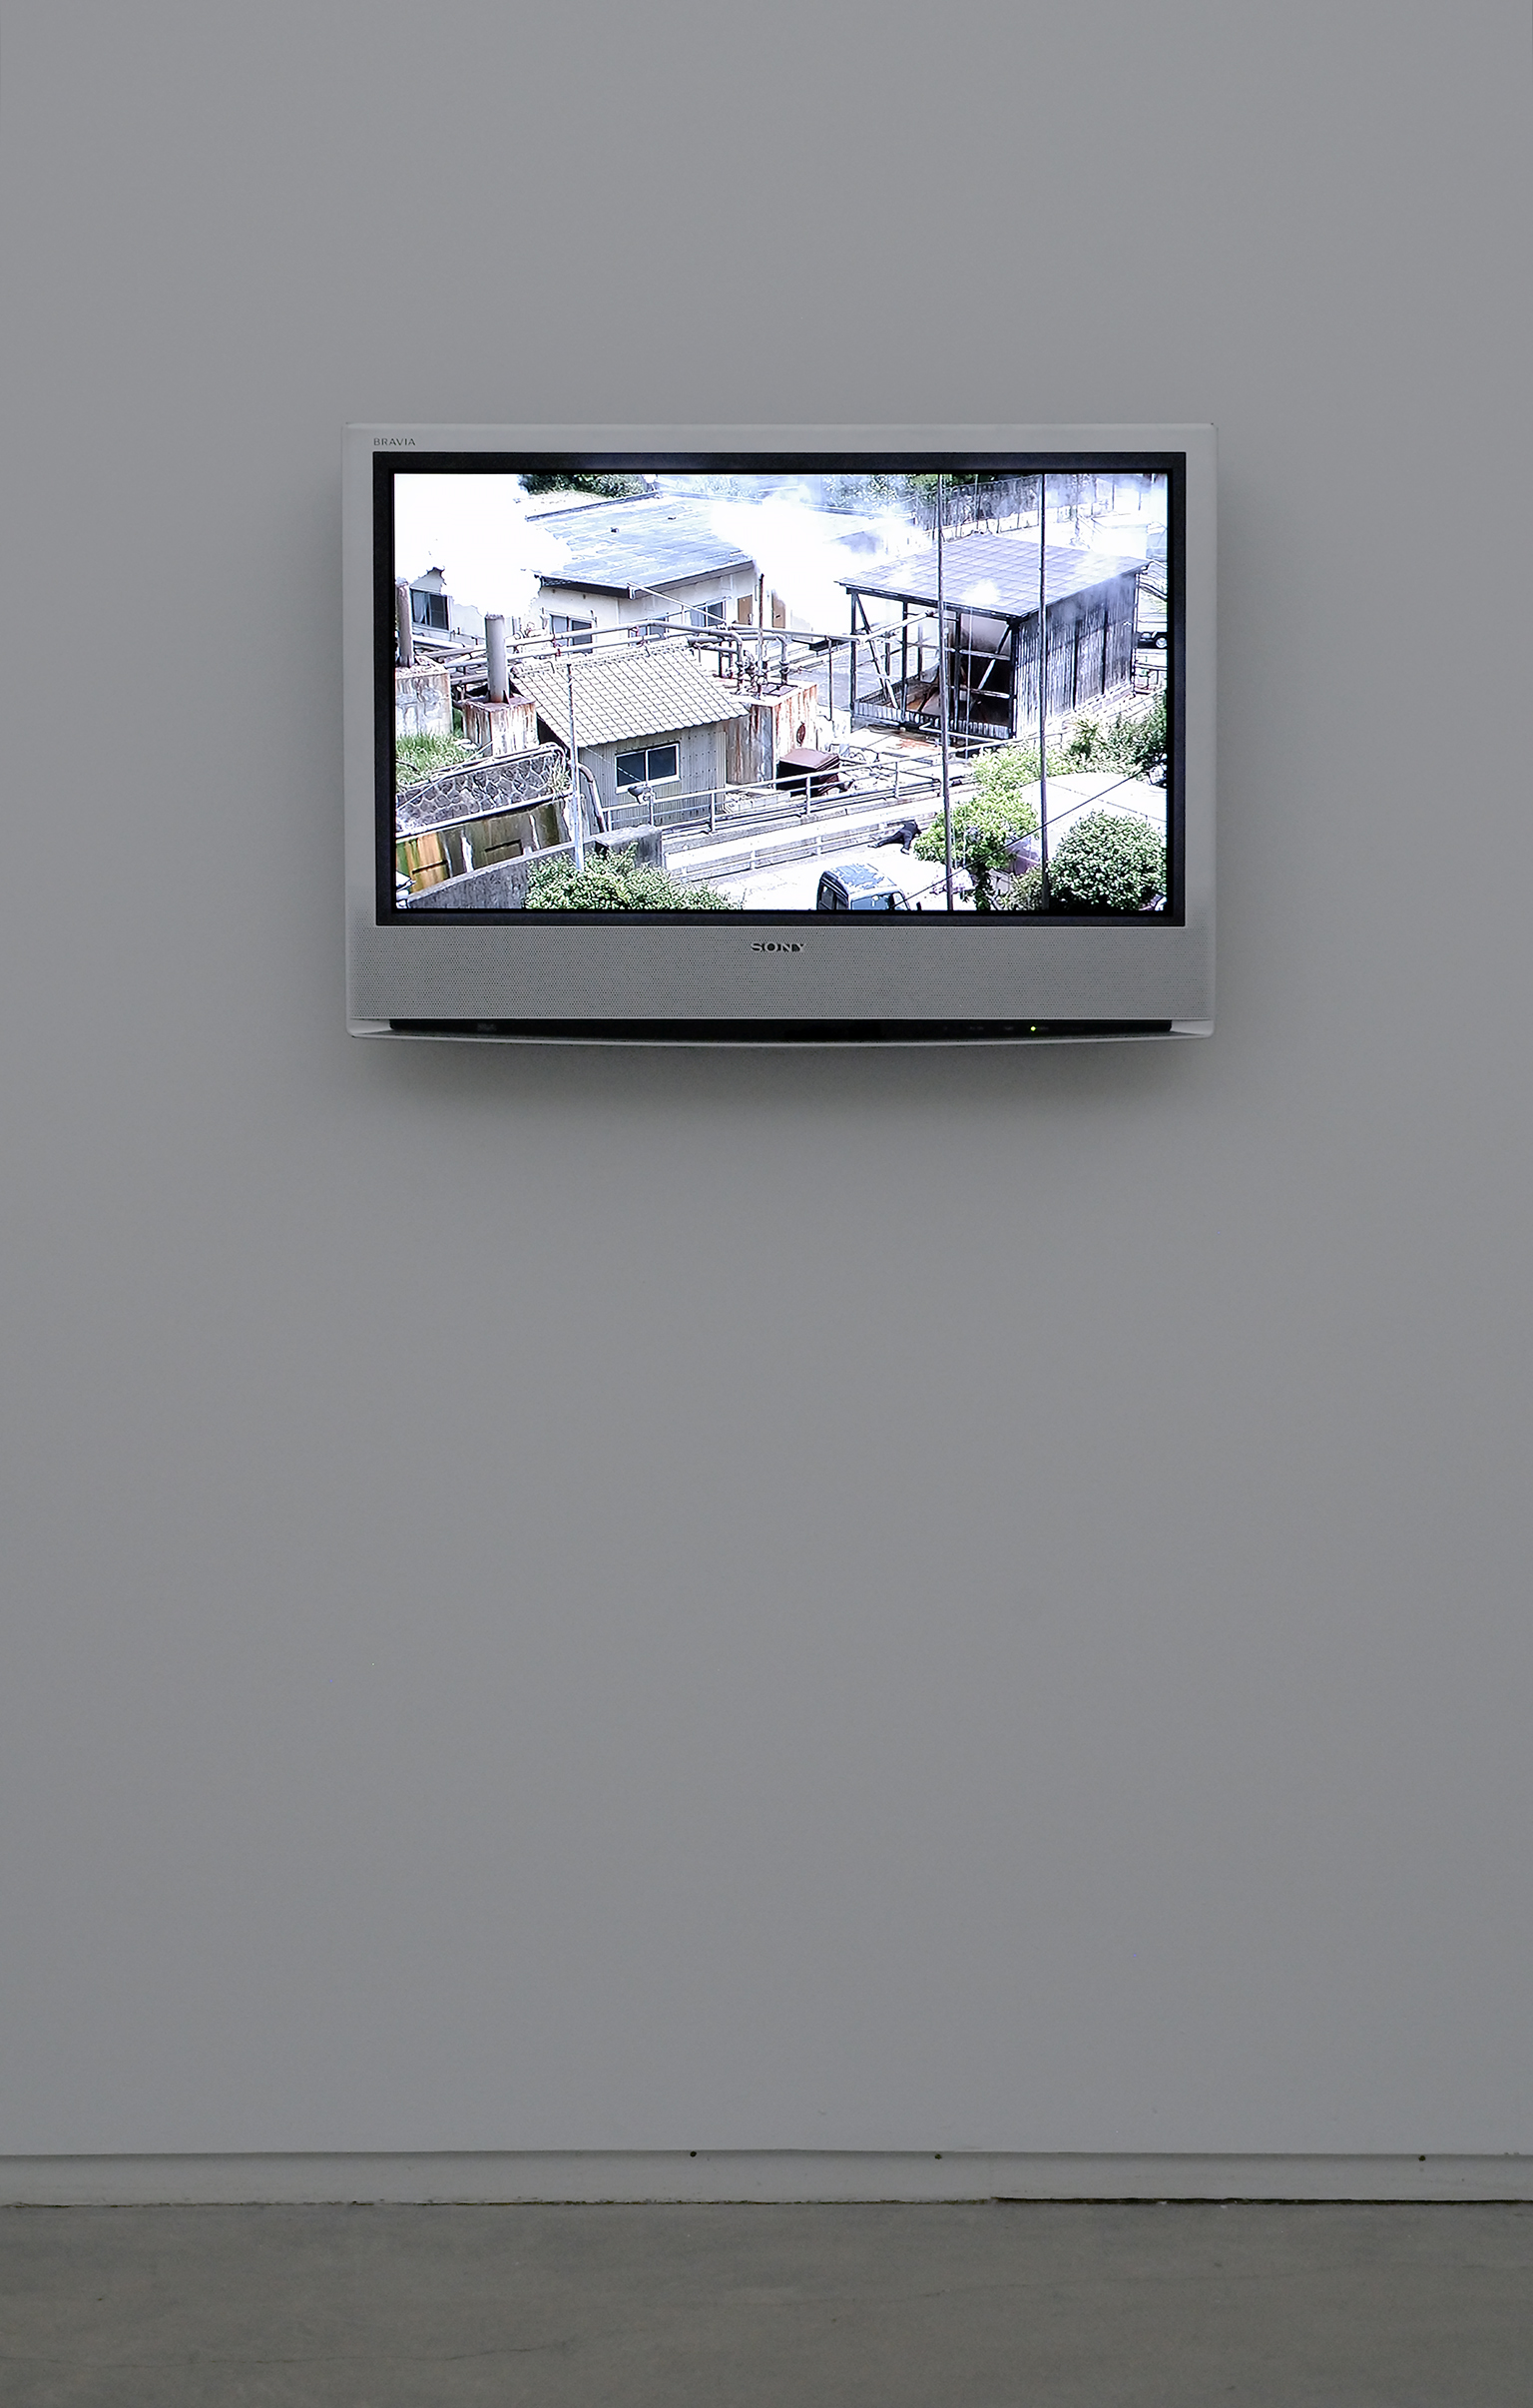 ​Jin-me Yoon, As It Is Becoming (Beppu, Japan): Kannawa District, 2008, single channel HD video, 22 minutes, 24 seconds by